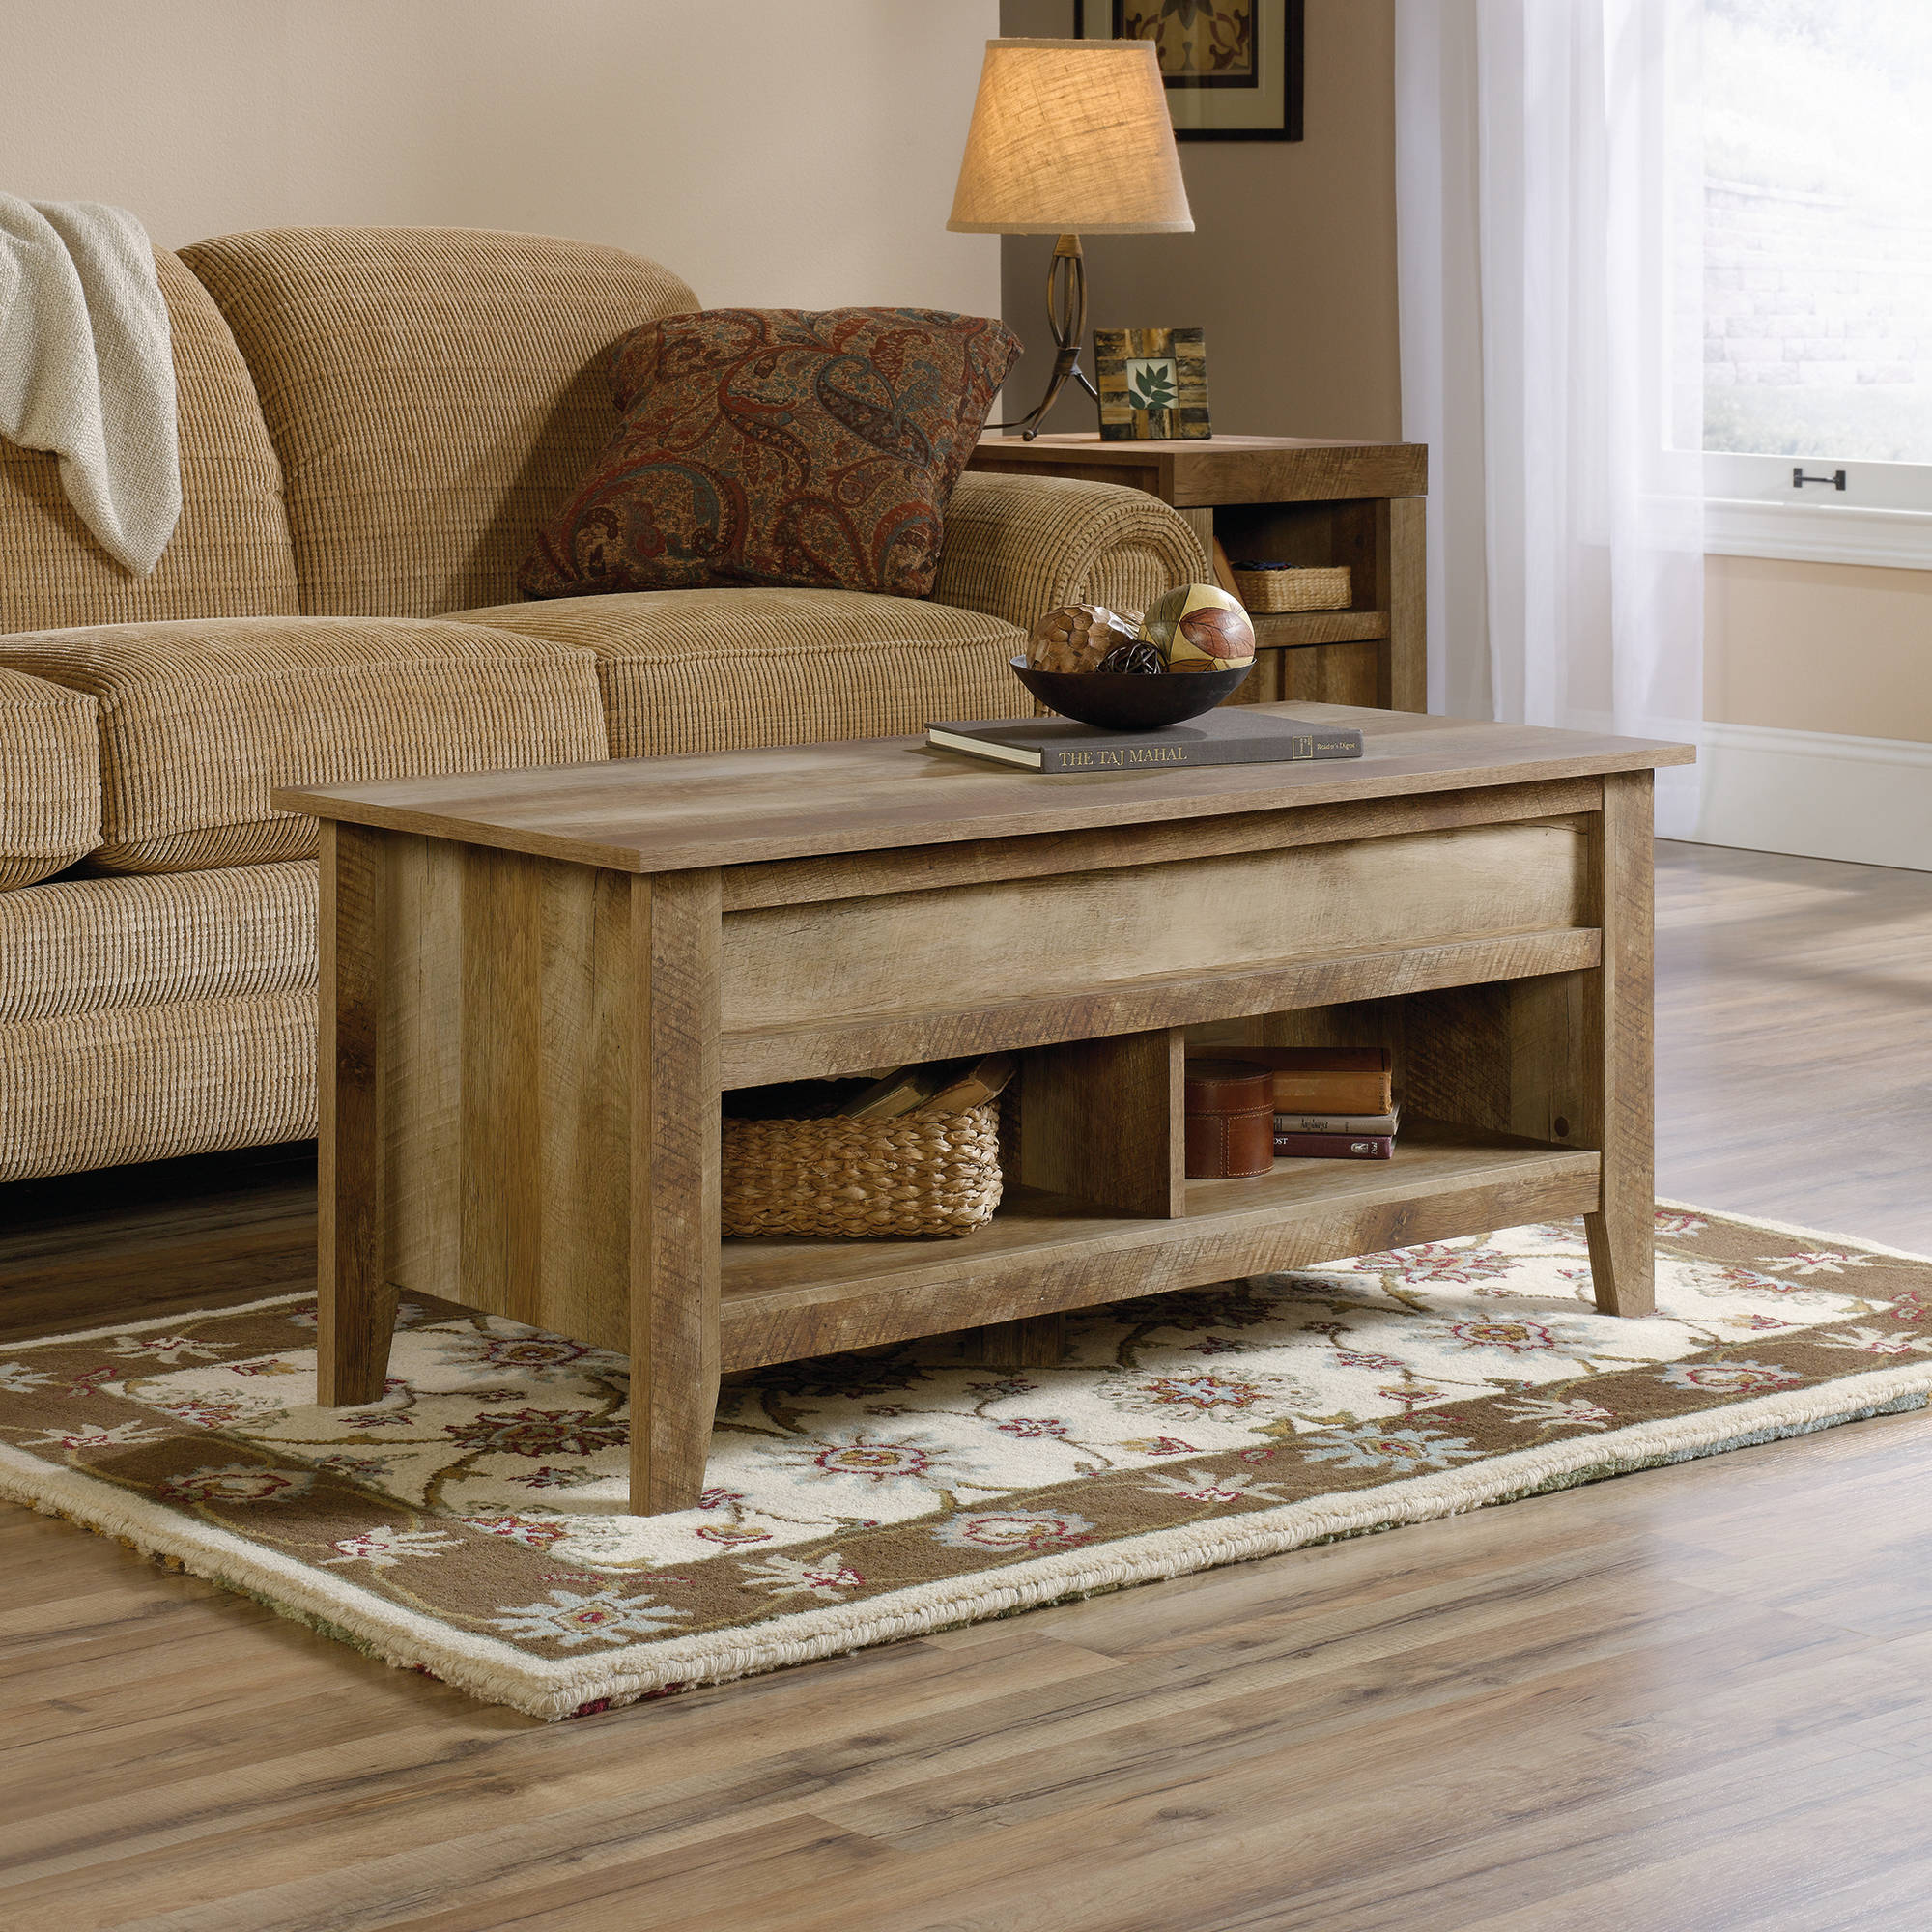 Sauder Dakota Pass Lift Top Coffee Table Craftsman Oak Finish